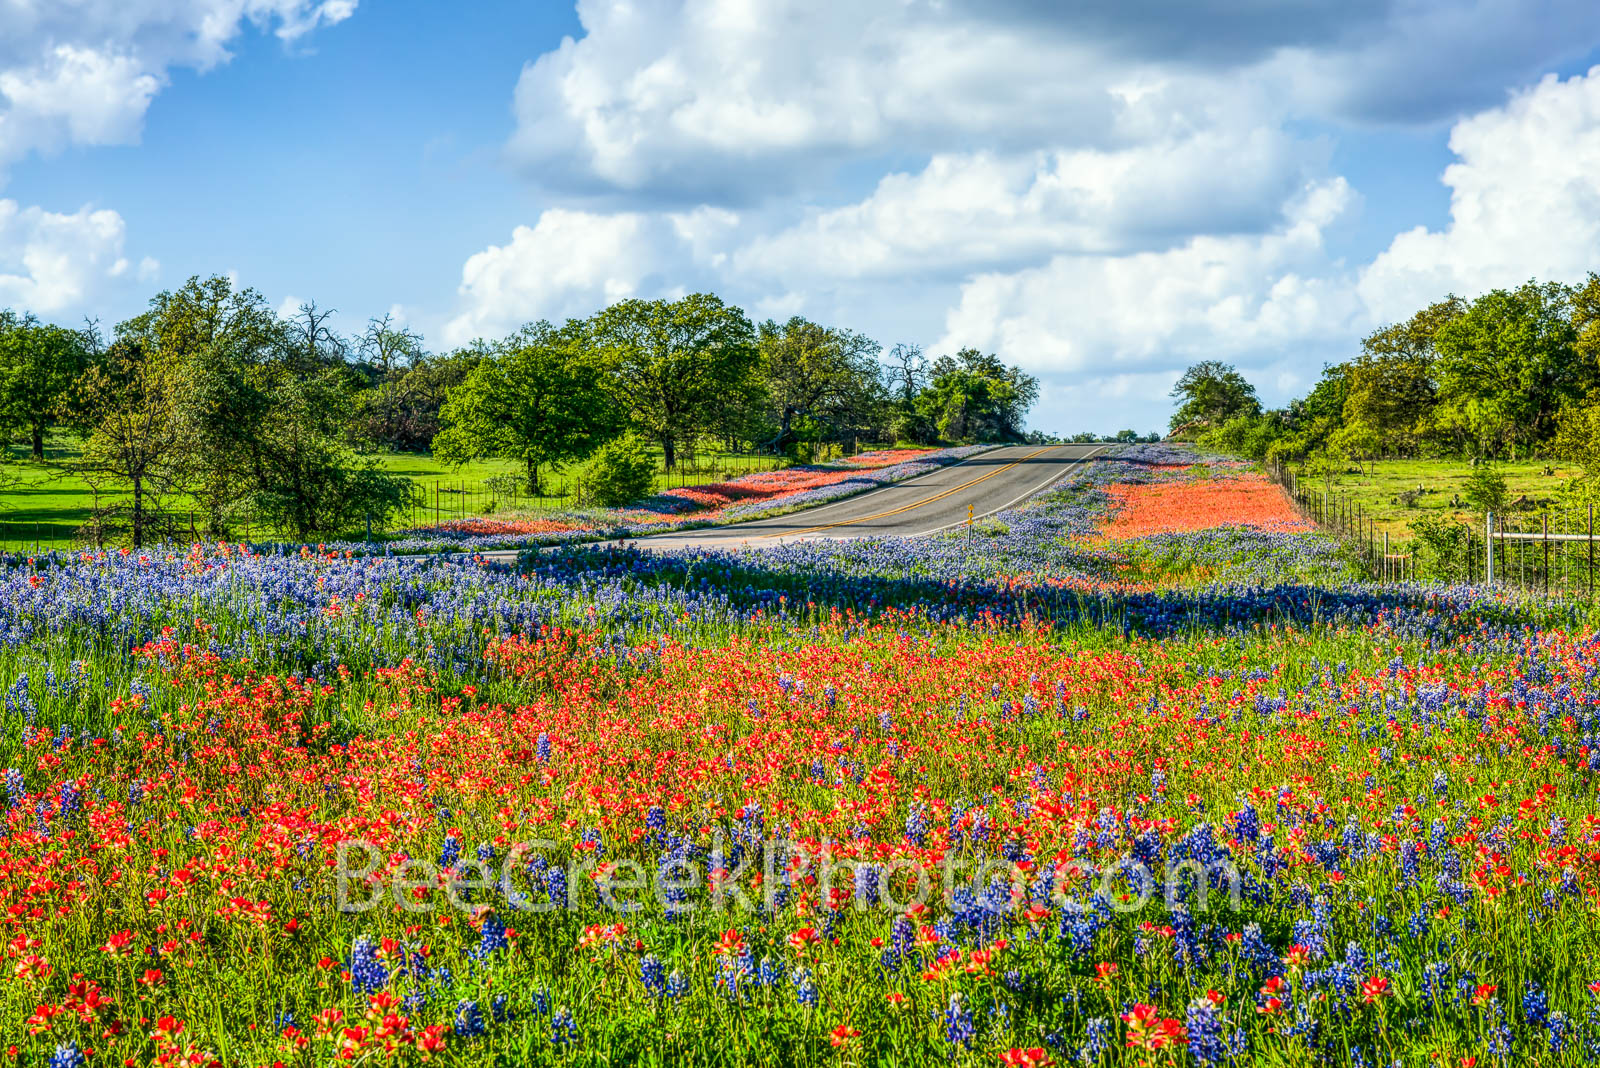 texas bluebonnets ,texas wildflowers, bluebonnets, indian paintbrush, blue, reds, landscape, texas landscapes, wildflowers, roadside, Texas Hill Country, Texas flowers, Texas wildflower, photos of w